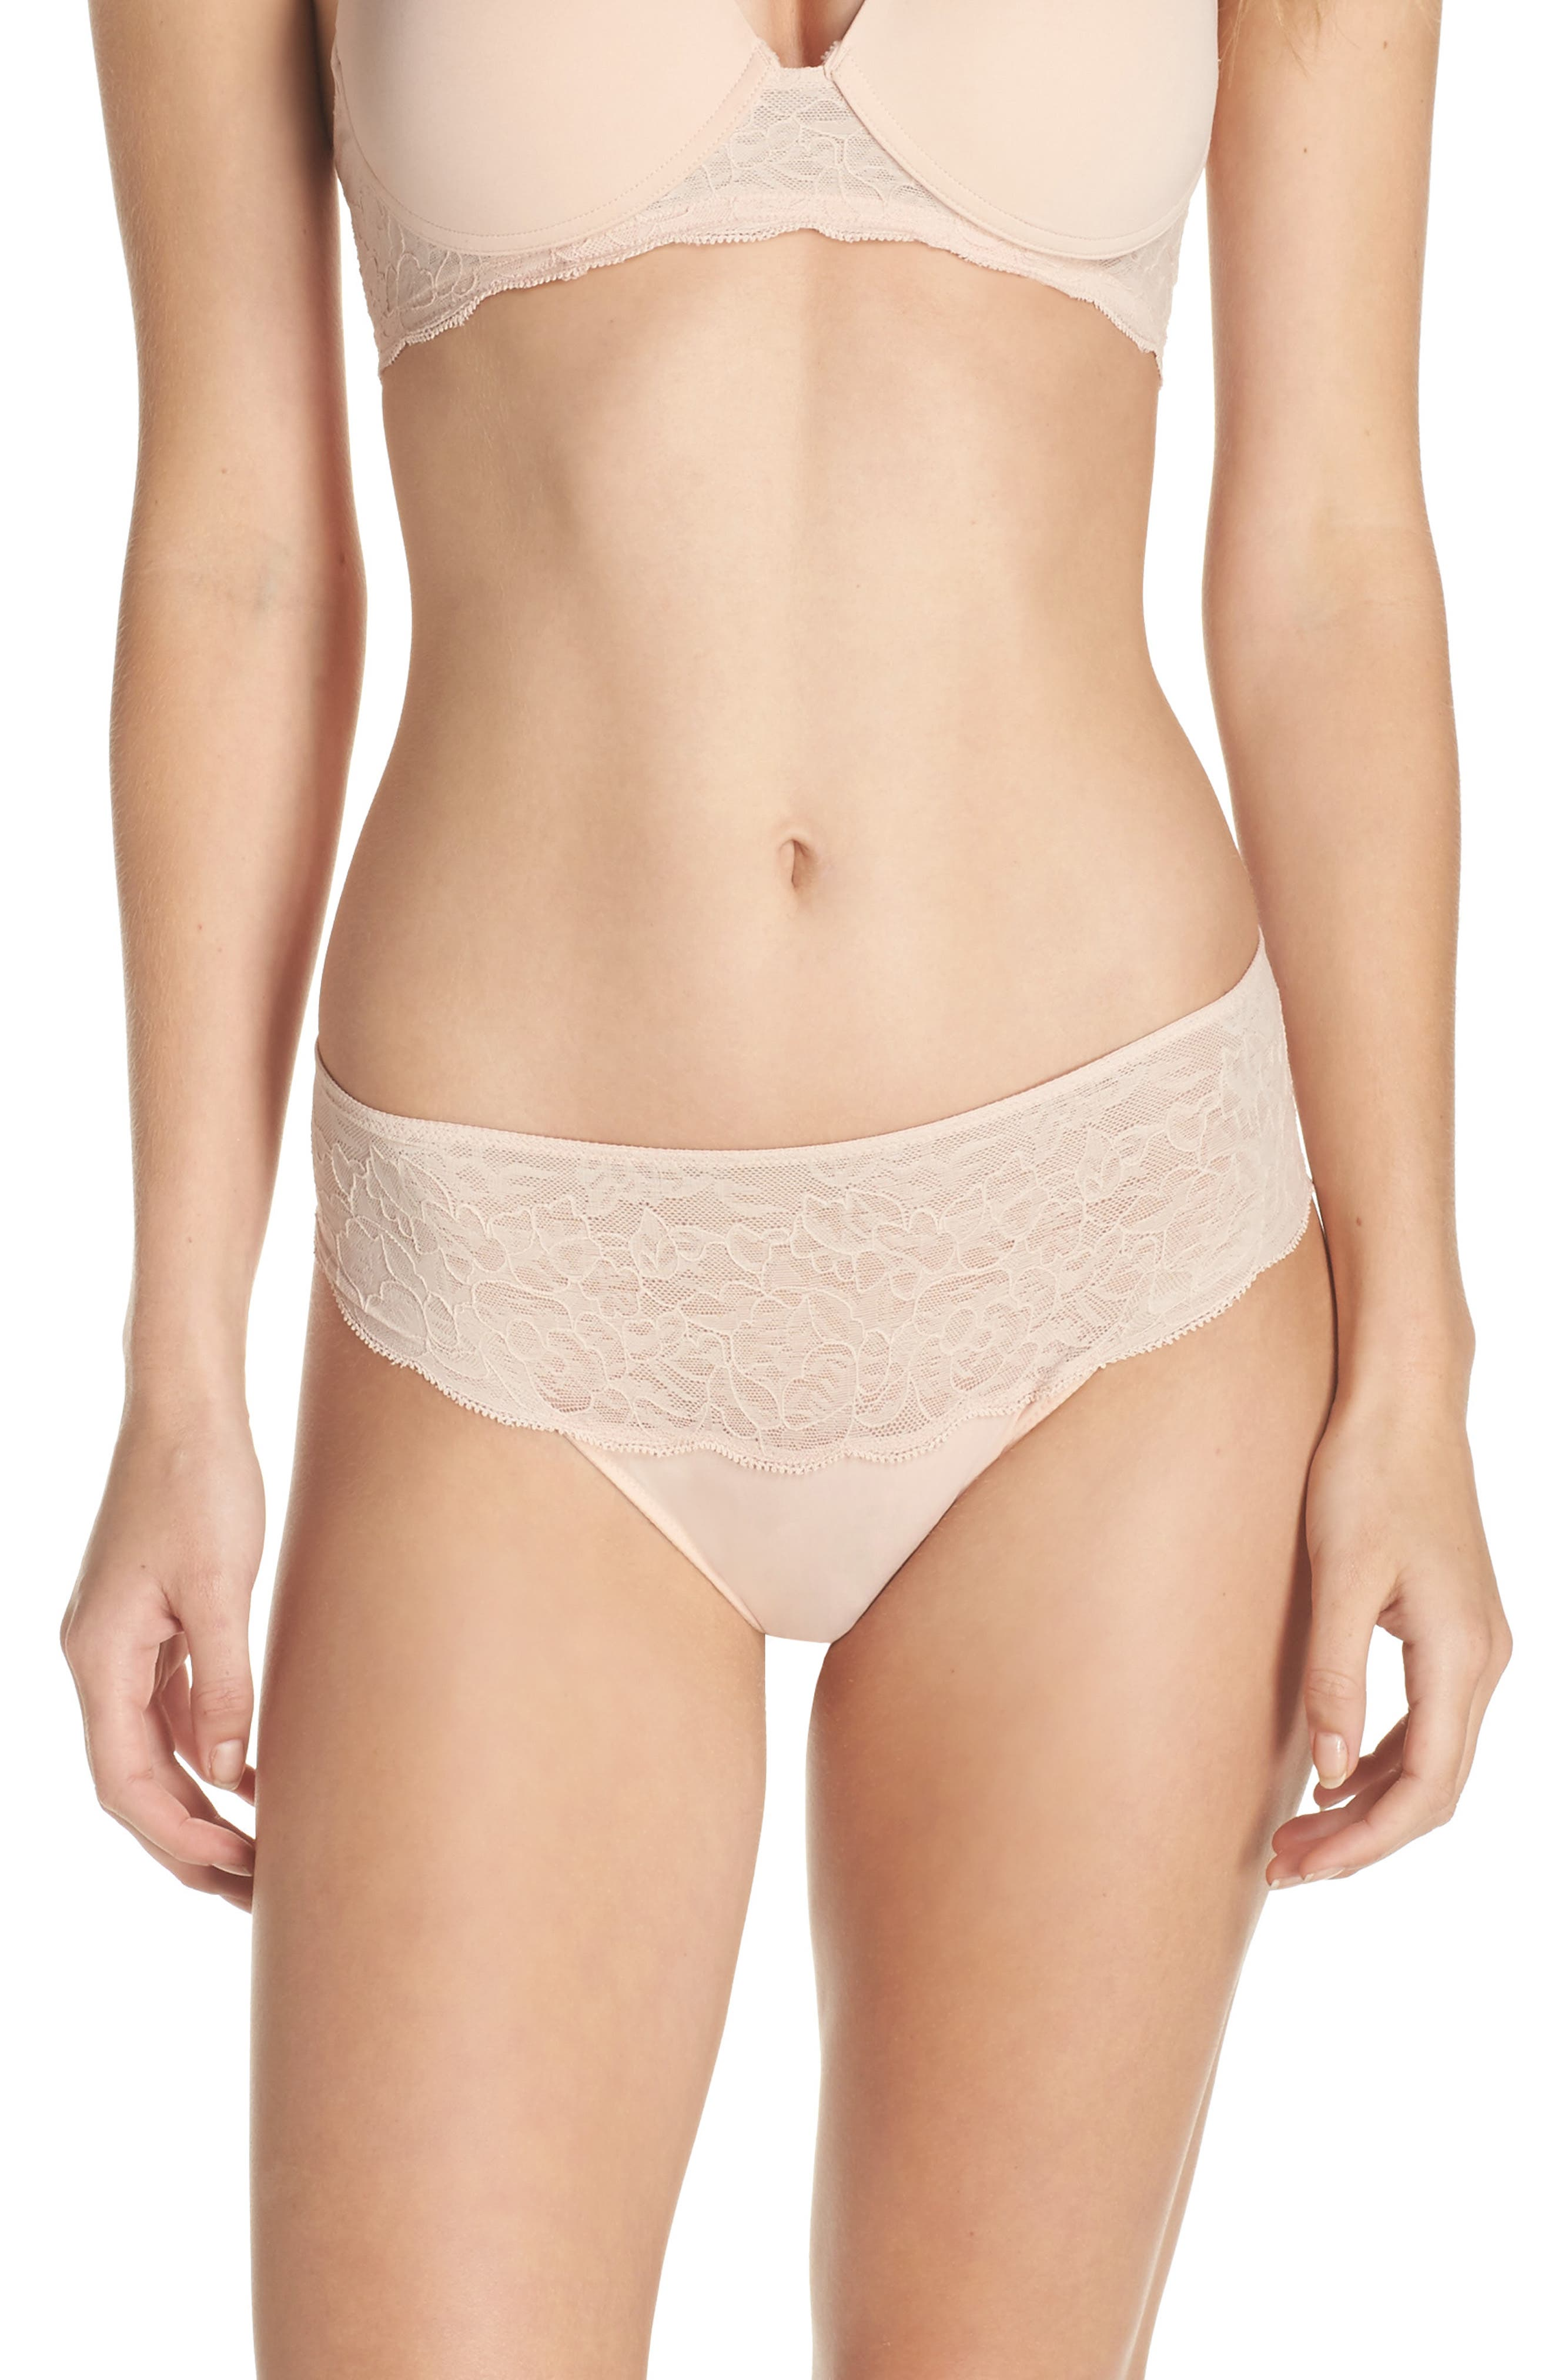 Retouch Thong,                         Main,                         color, Cameo Rose